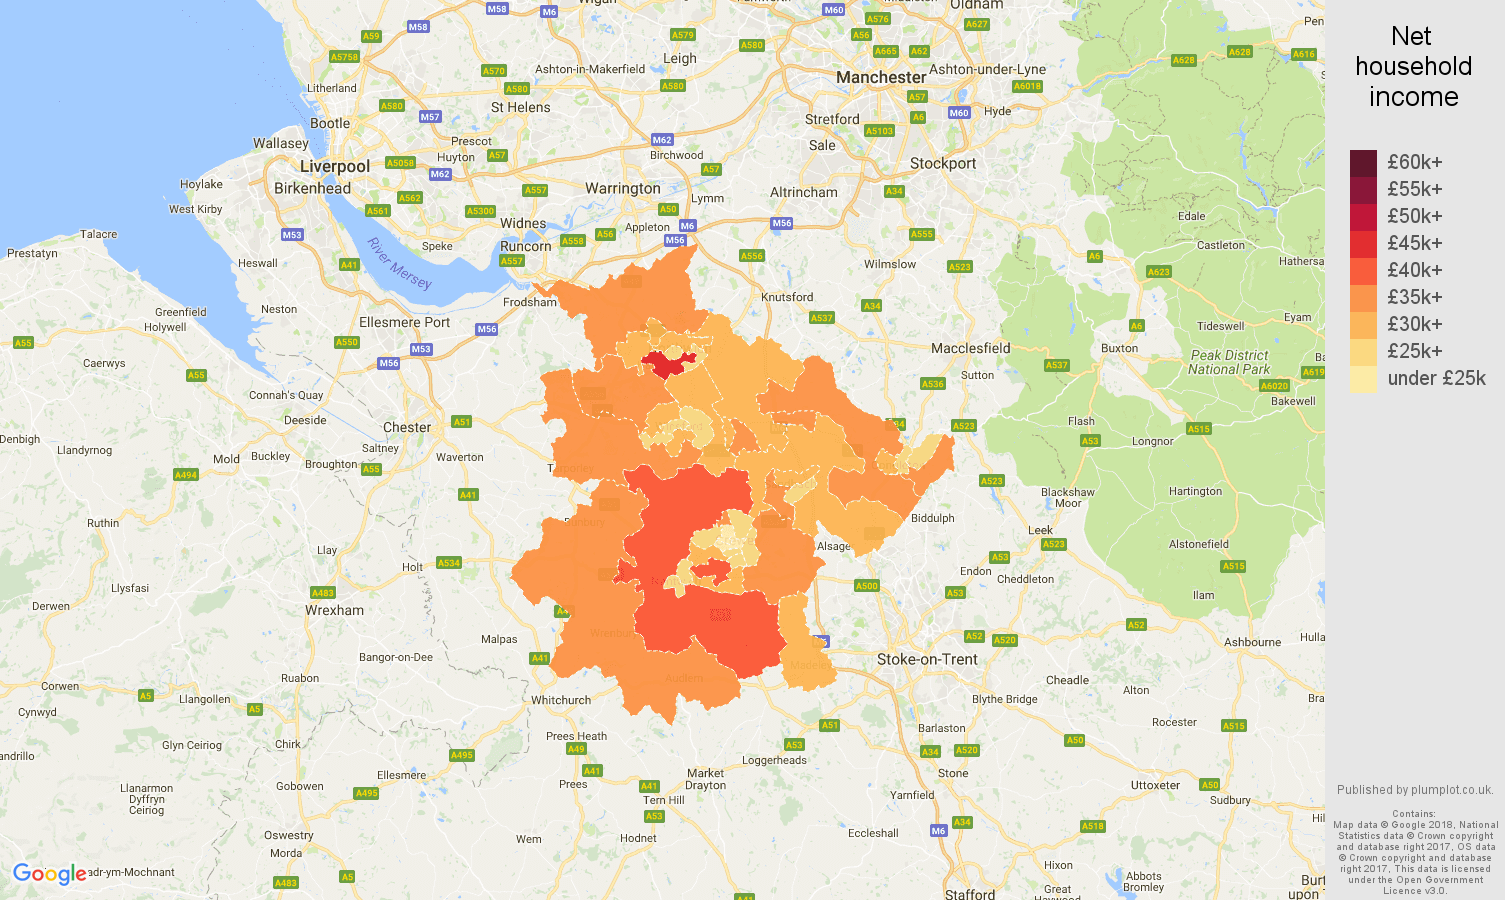 Crewe net household income map